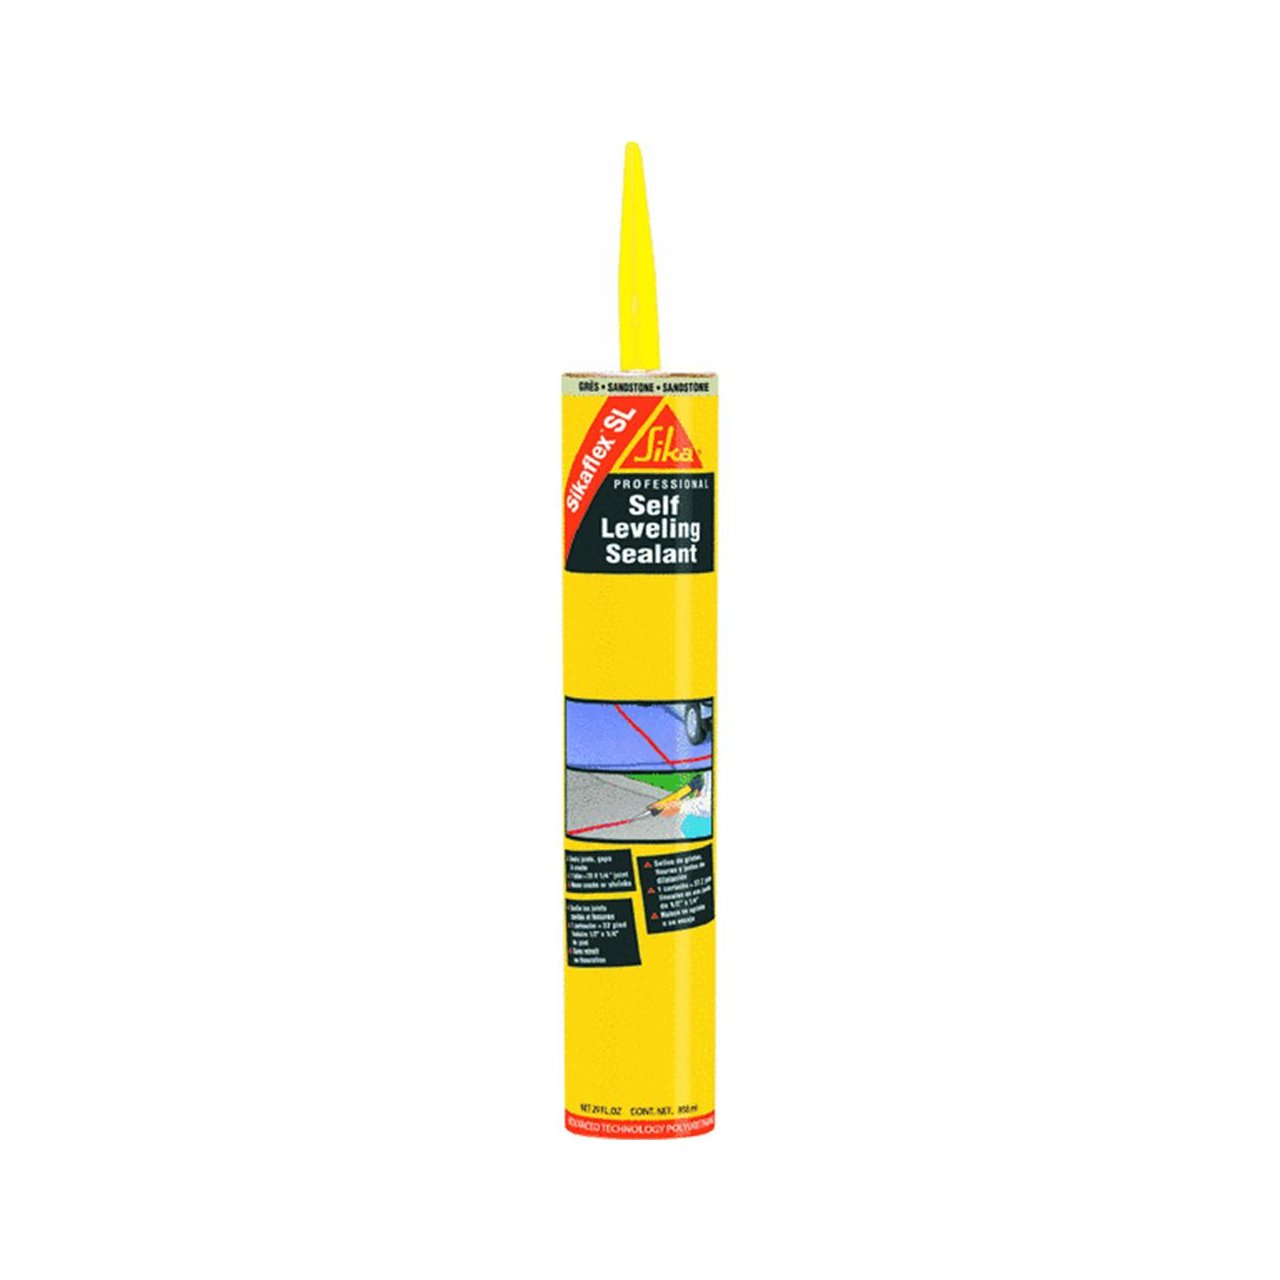 Amazon sika corporation 107748 sikaflex self leveling sealant amazon sika corporation 107748 sikaflex self leveling sealant 40 100 degree f temperature range garden outdoor nvjuhfo Choice Image